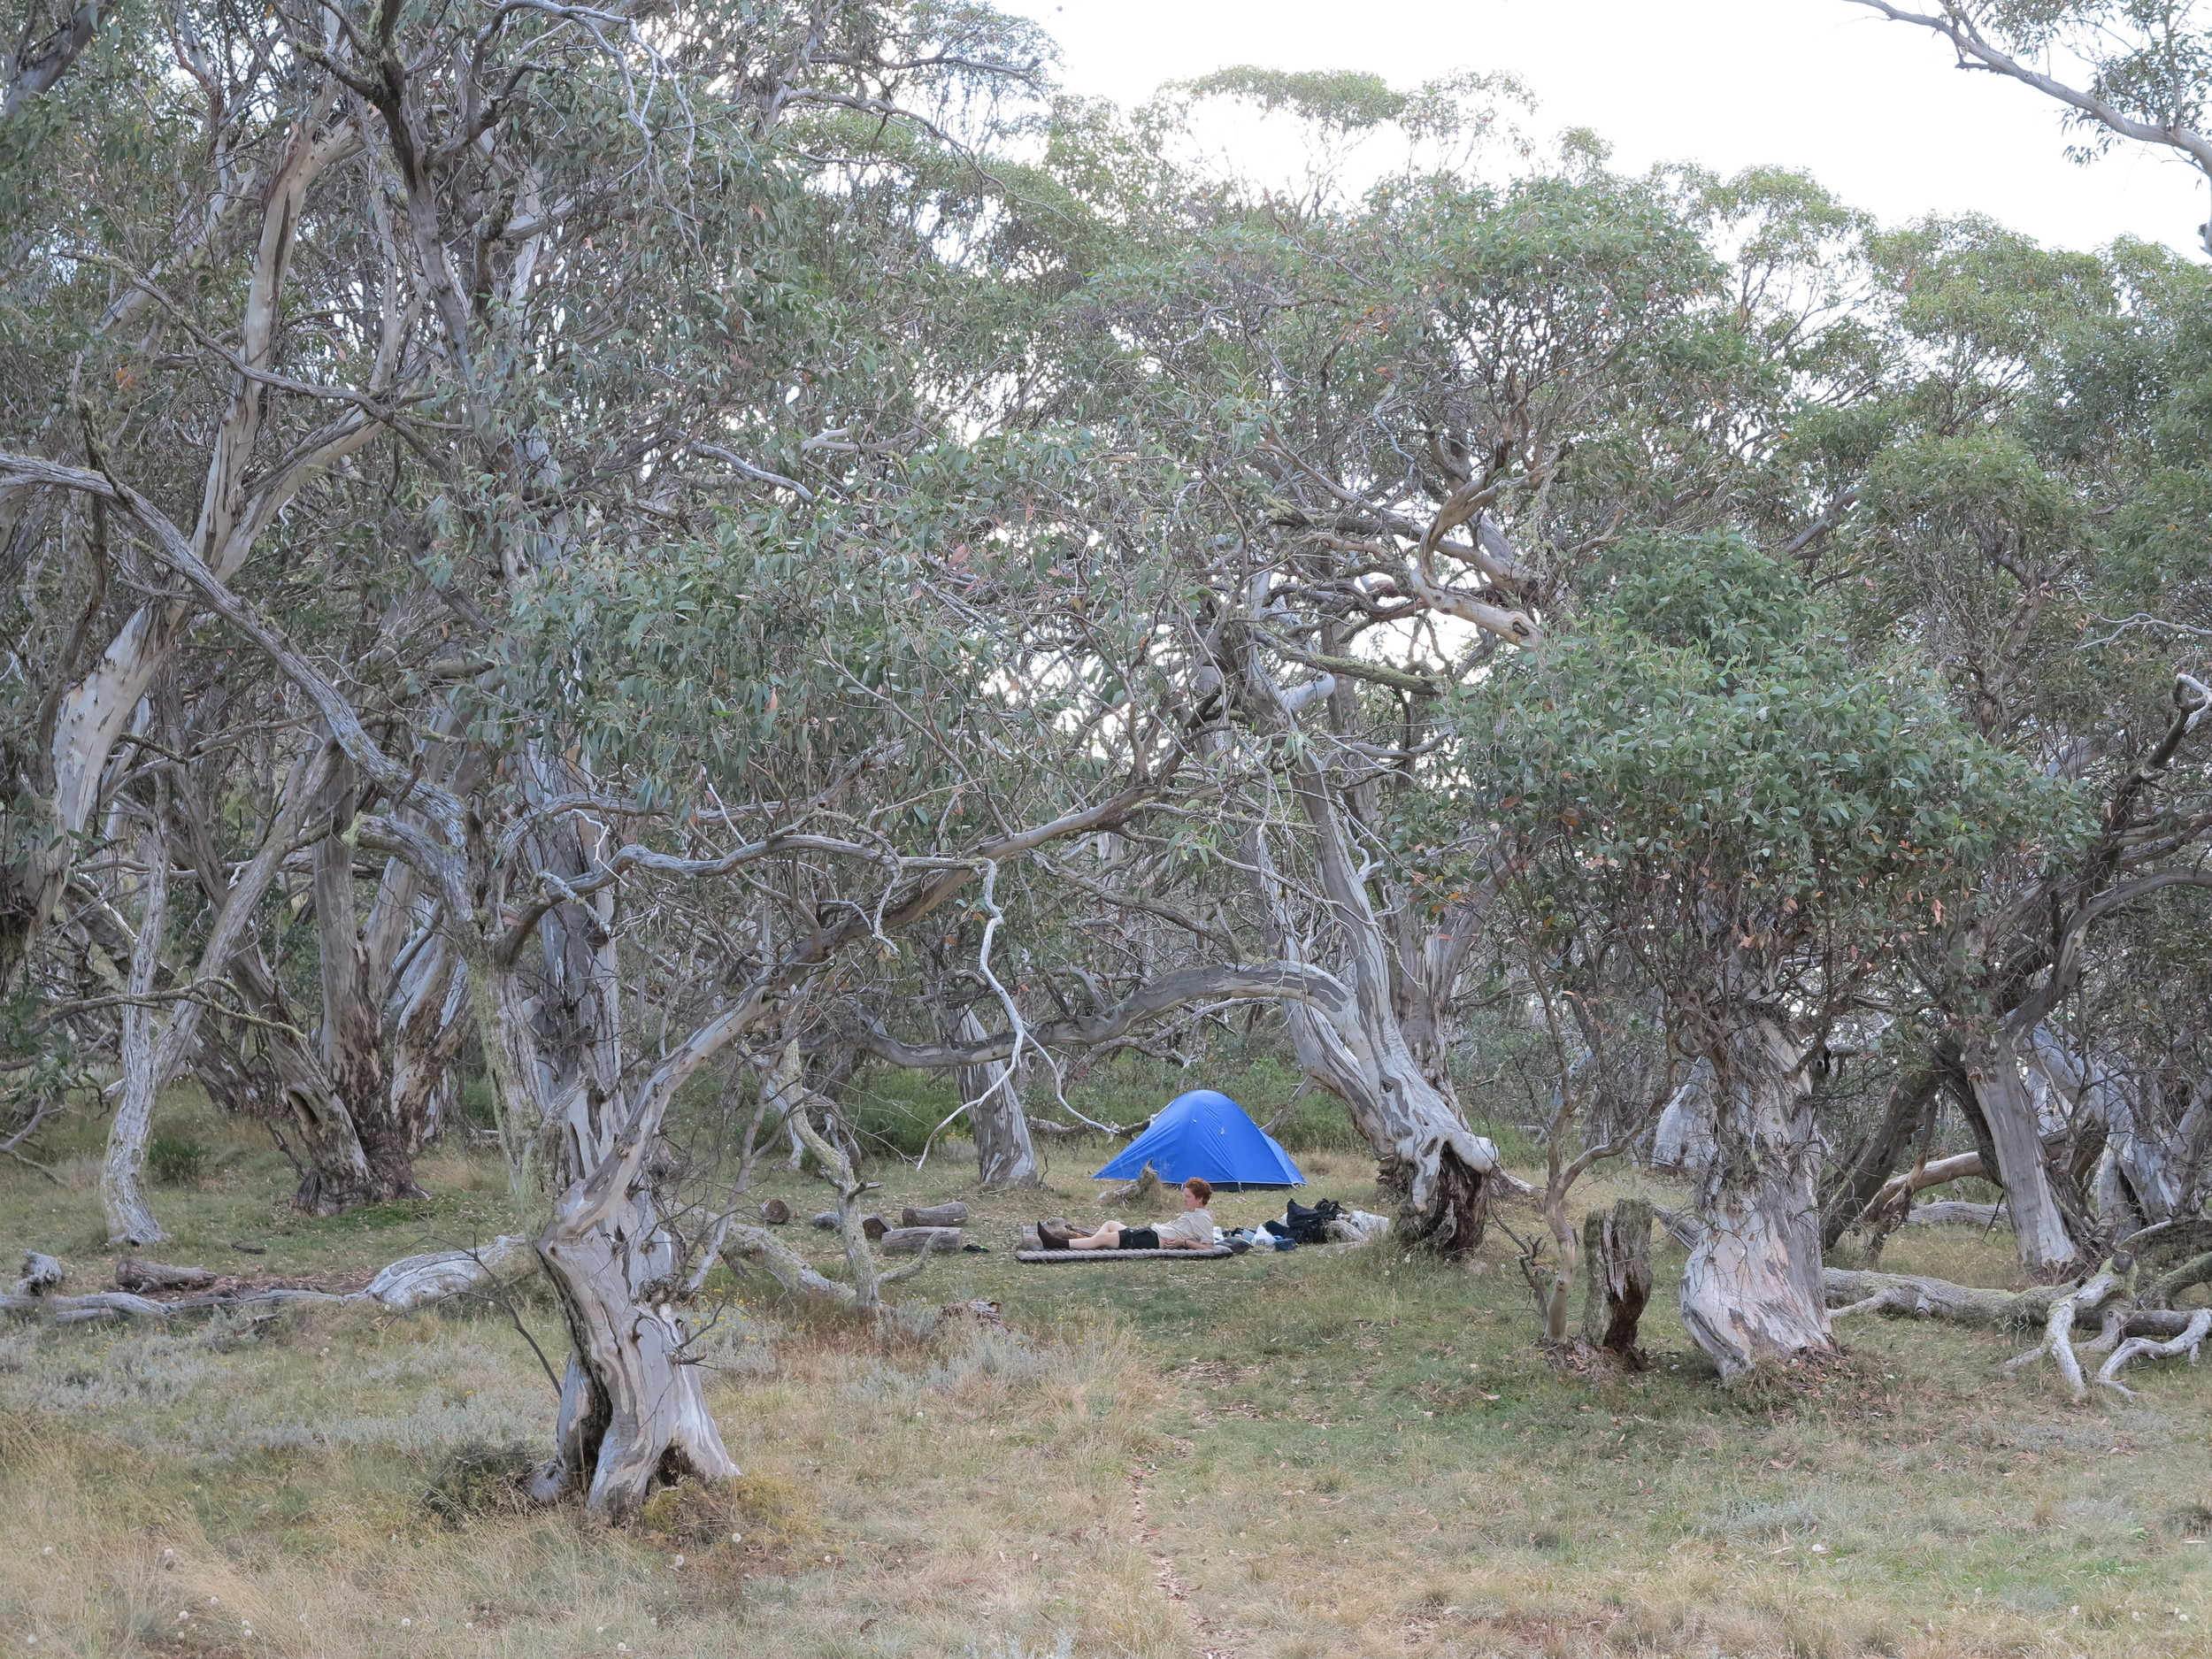 The campsite at Mt Magdala. Photo: Alex Mullarky